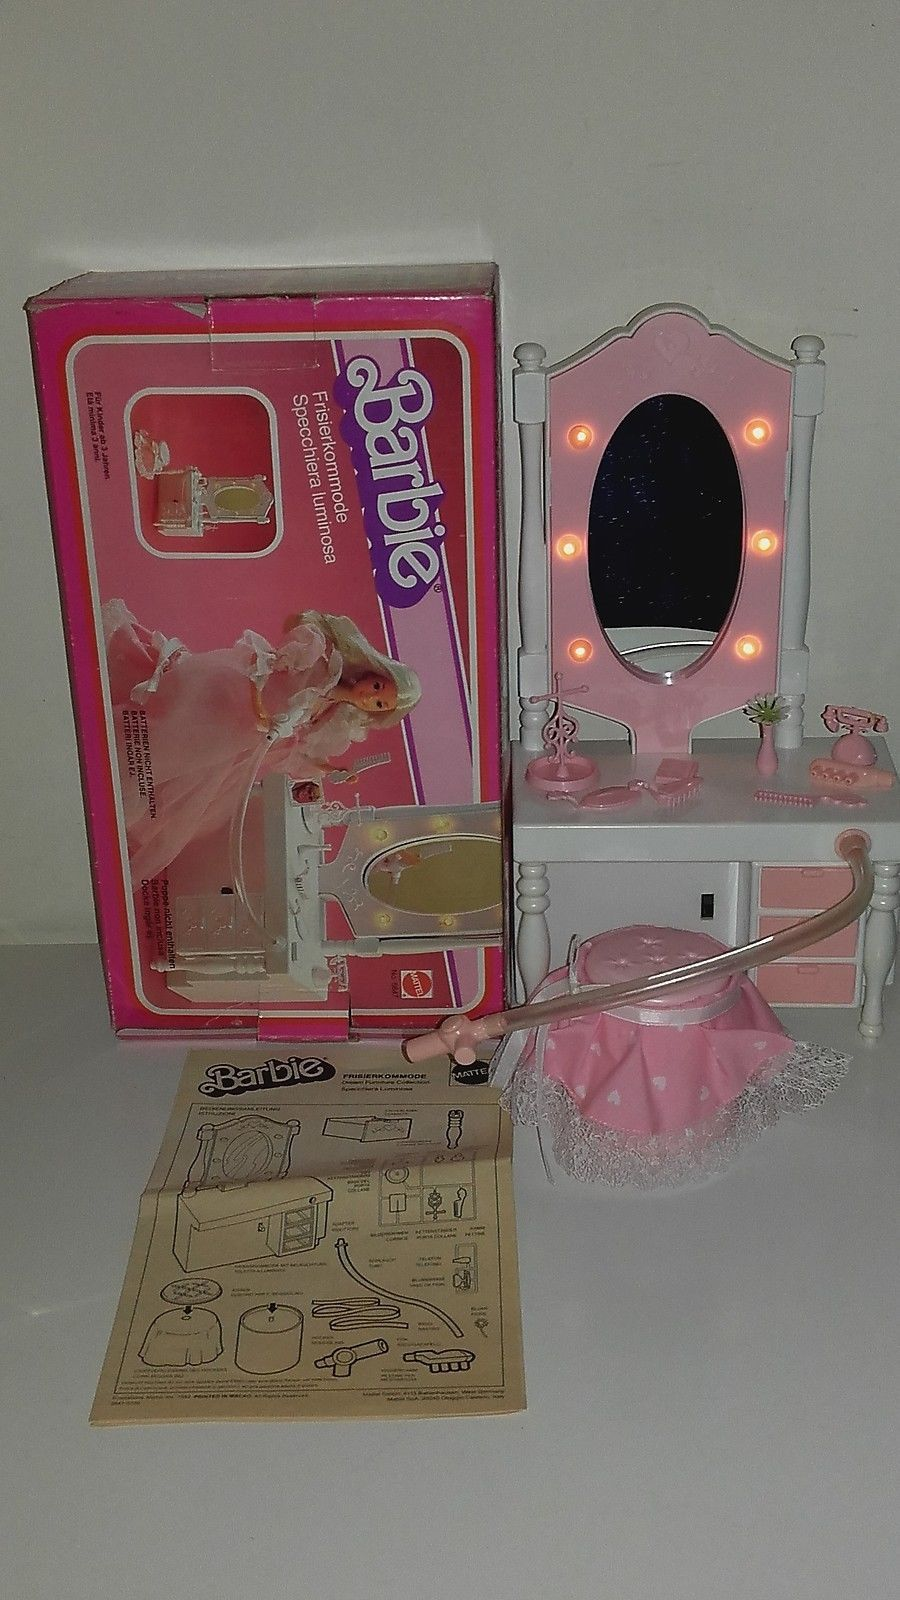 Barbie Bedroom In A Box: BARBIE SPECCHIERA LUMINOSA Mattel 1982 NUOVO IN BOX VANITY